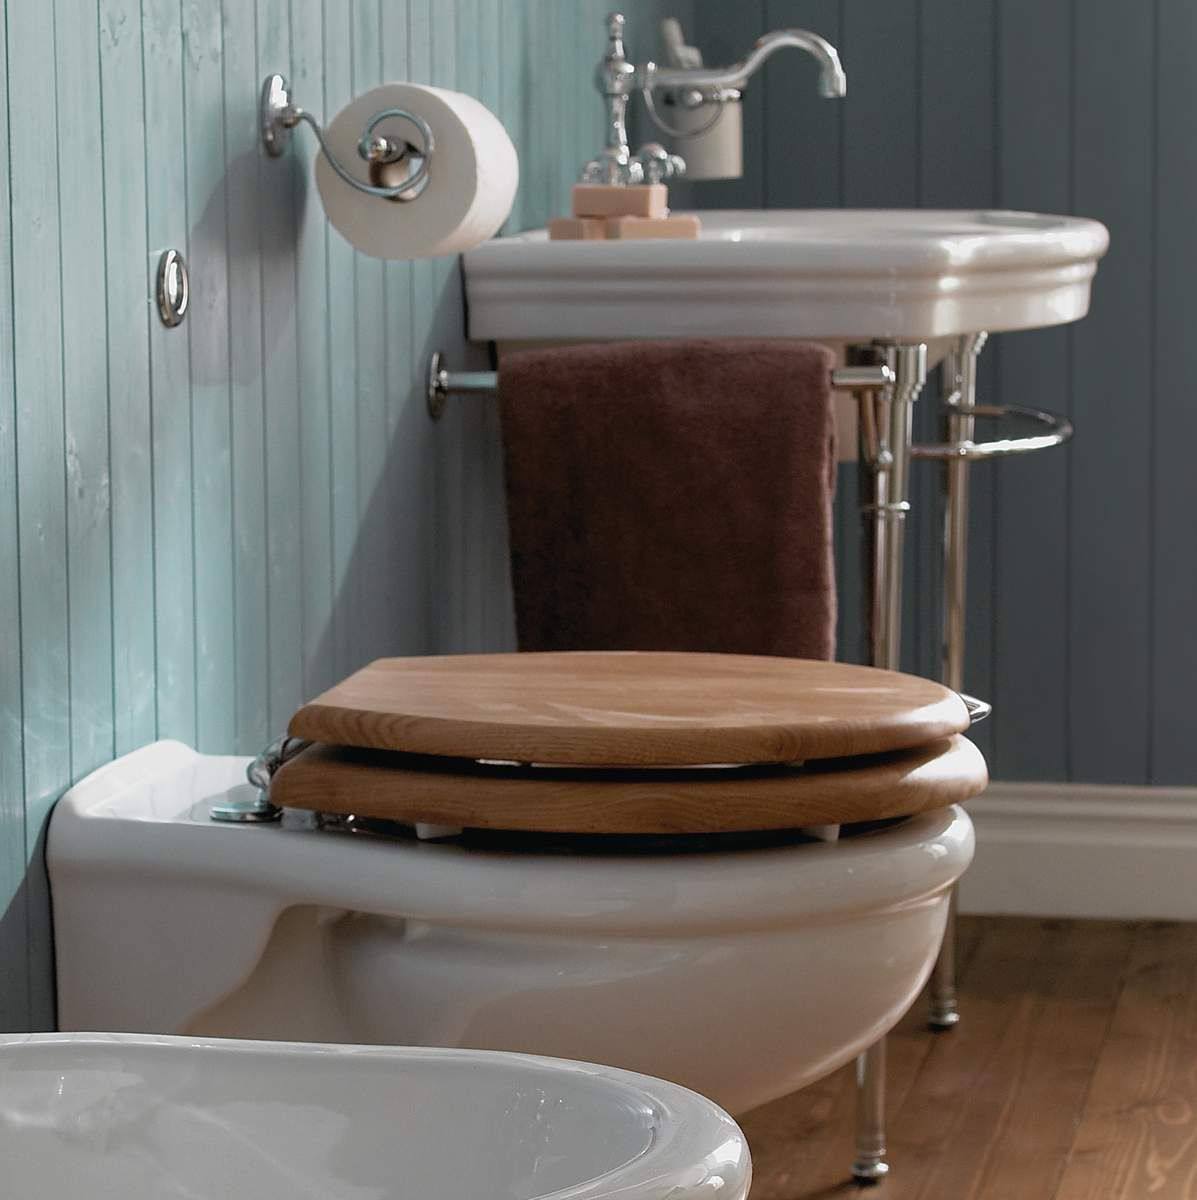 Toilets And Bathrooms: Imperial Bergier Wall Mounted Toilet : UK Bathrooms